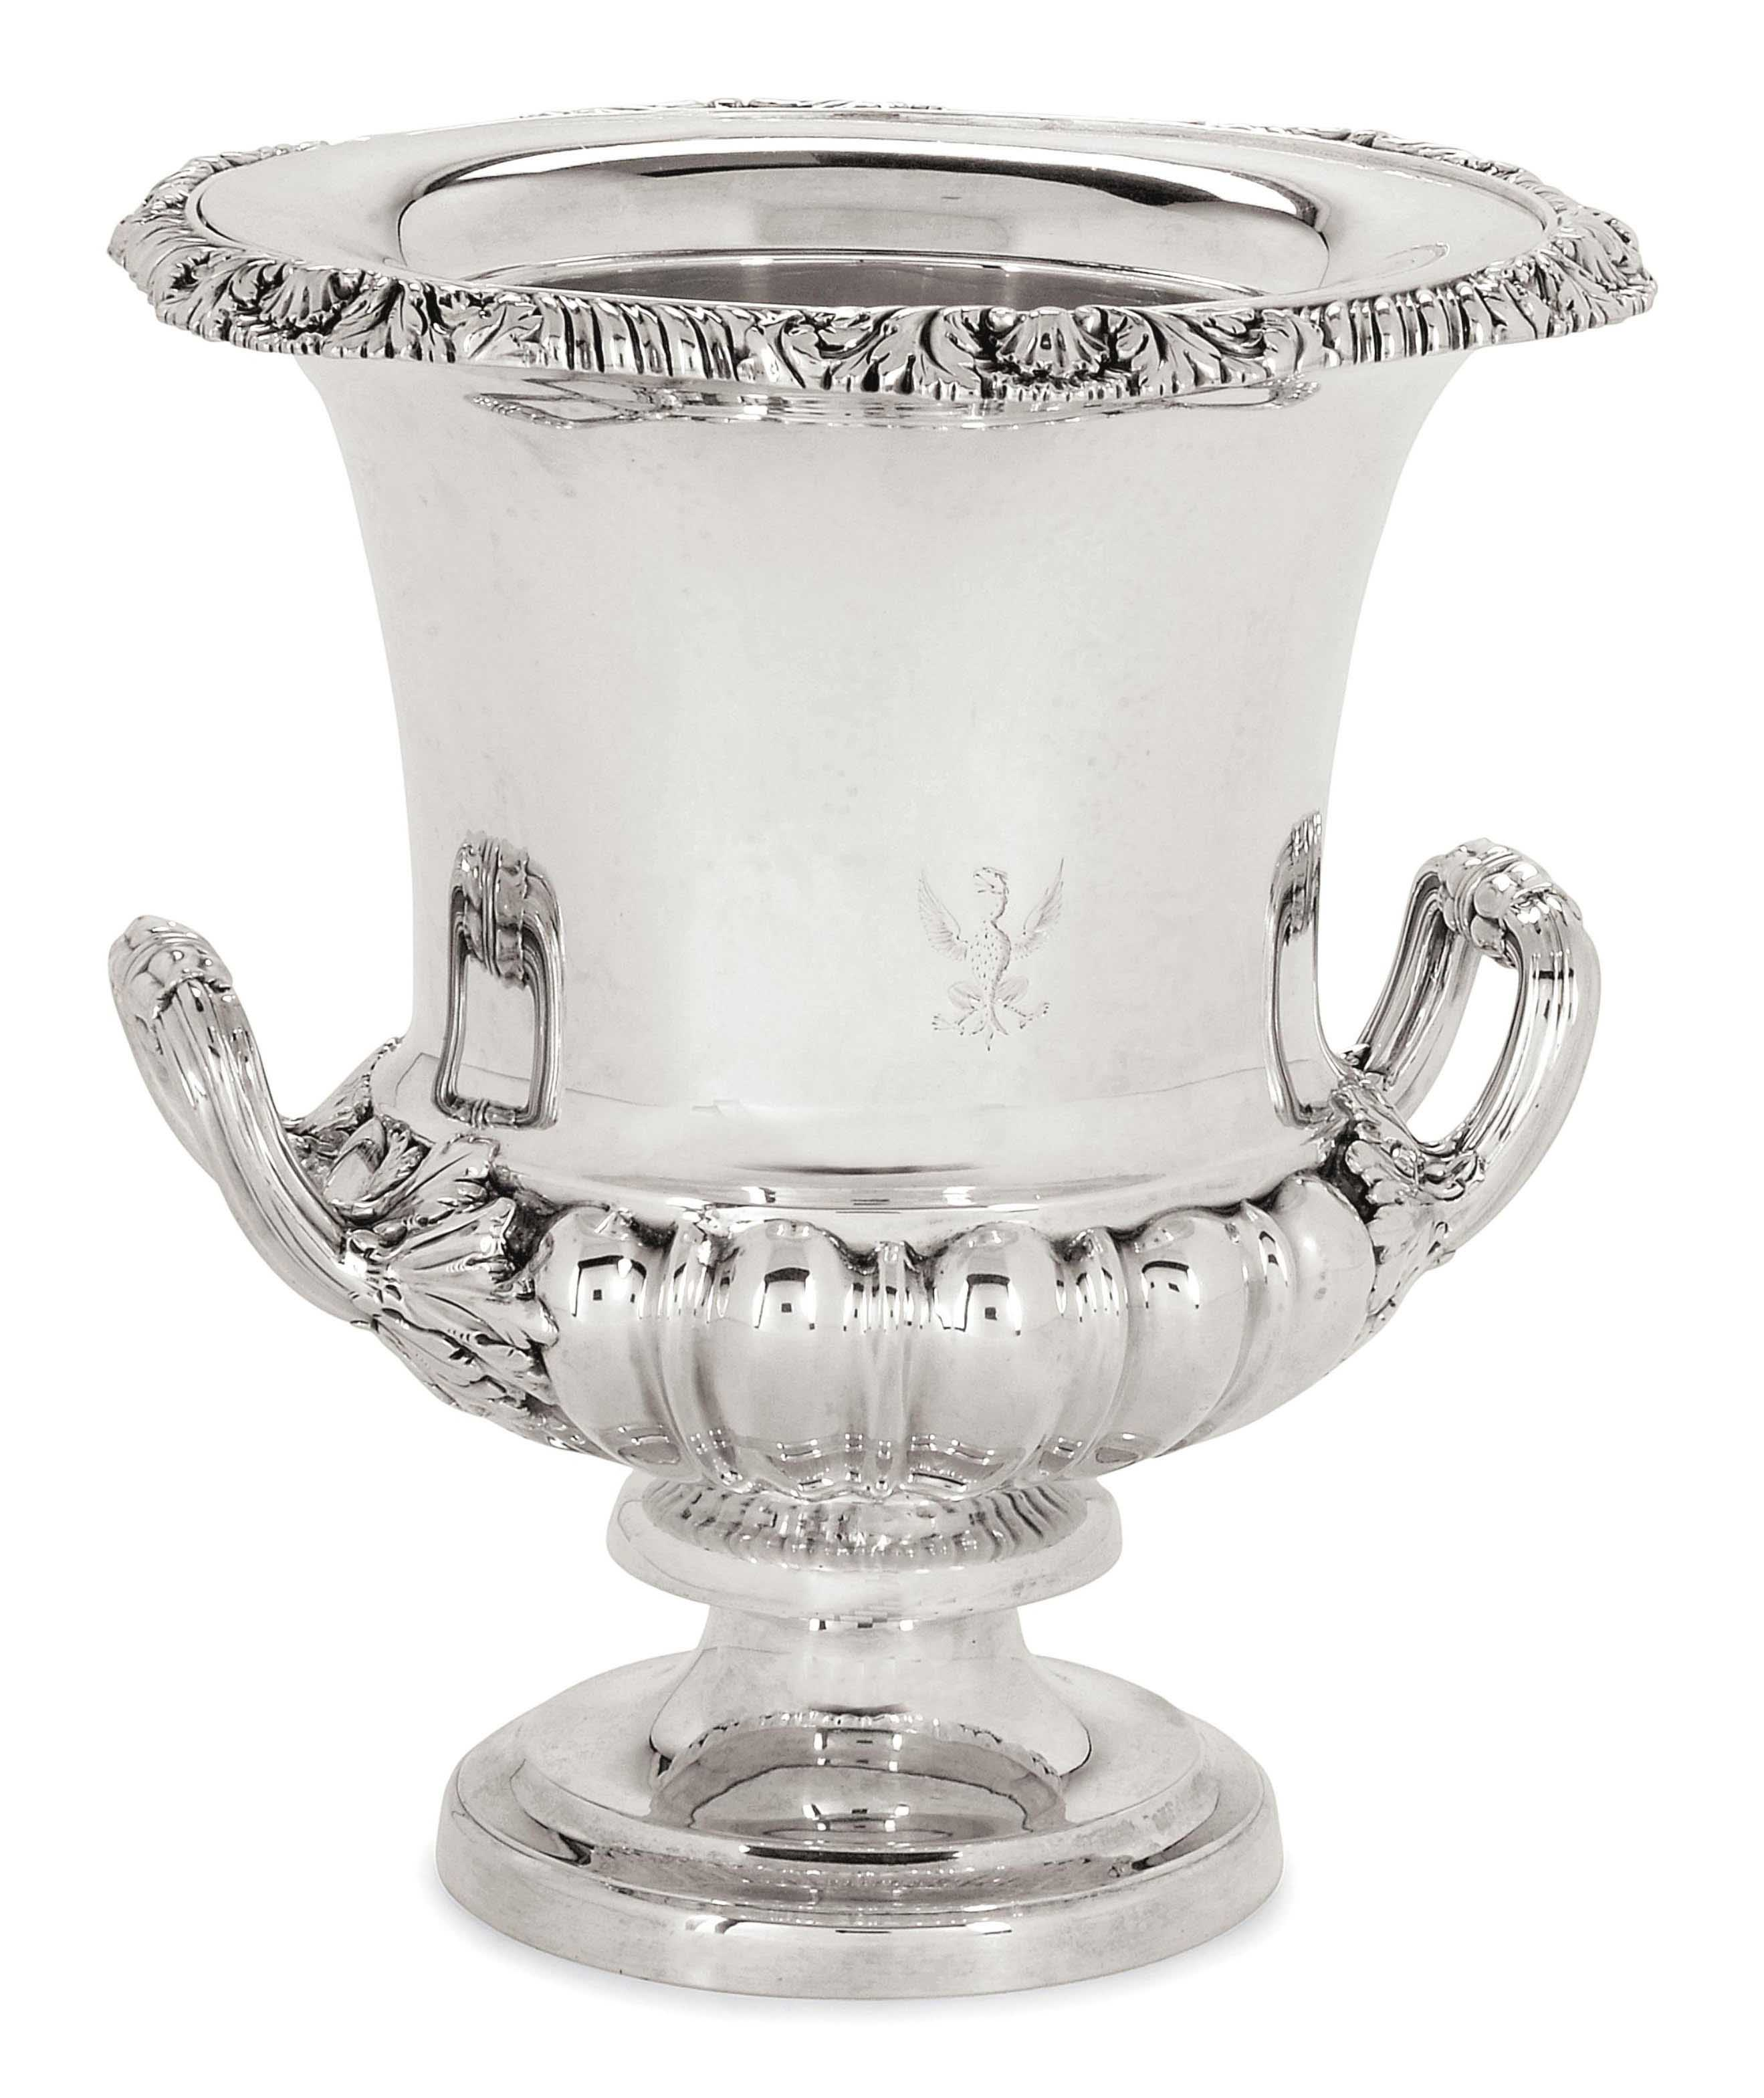 A GEORGE IV SILVER WINE COOLER